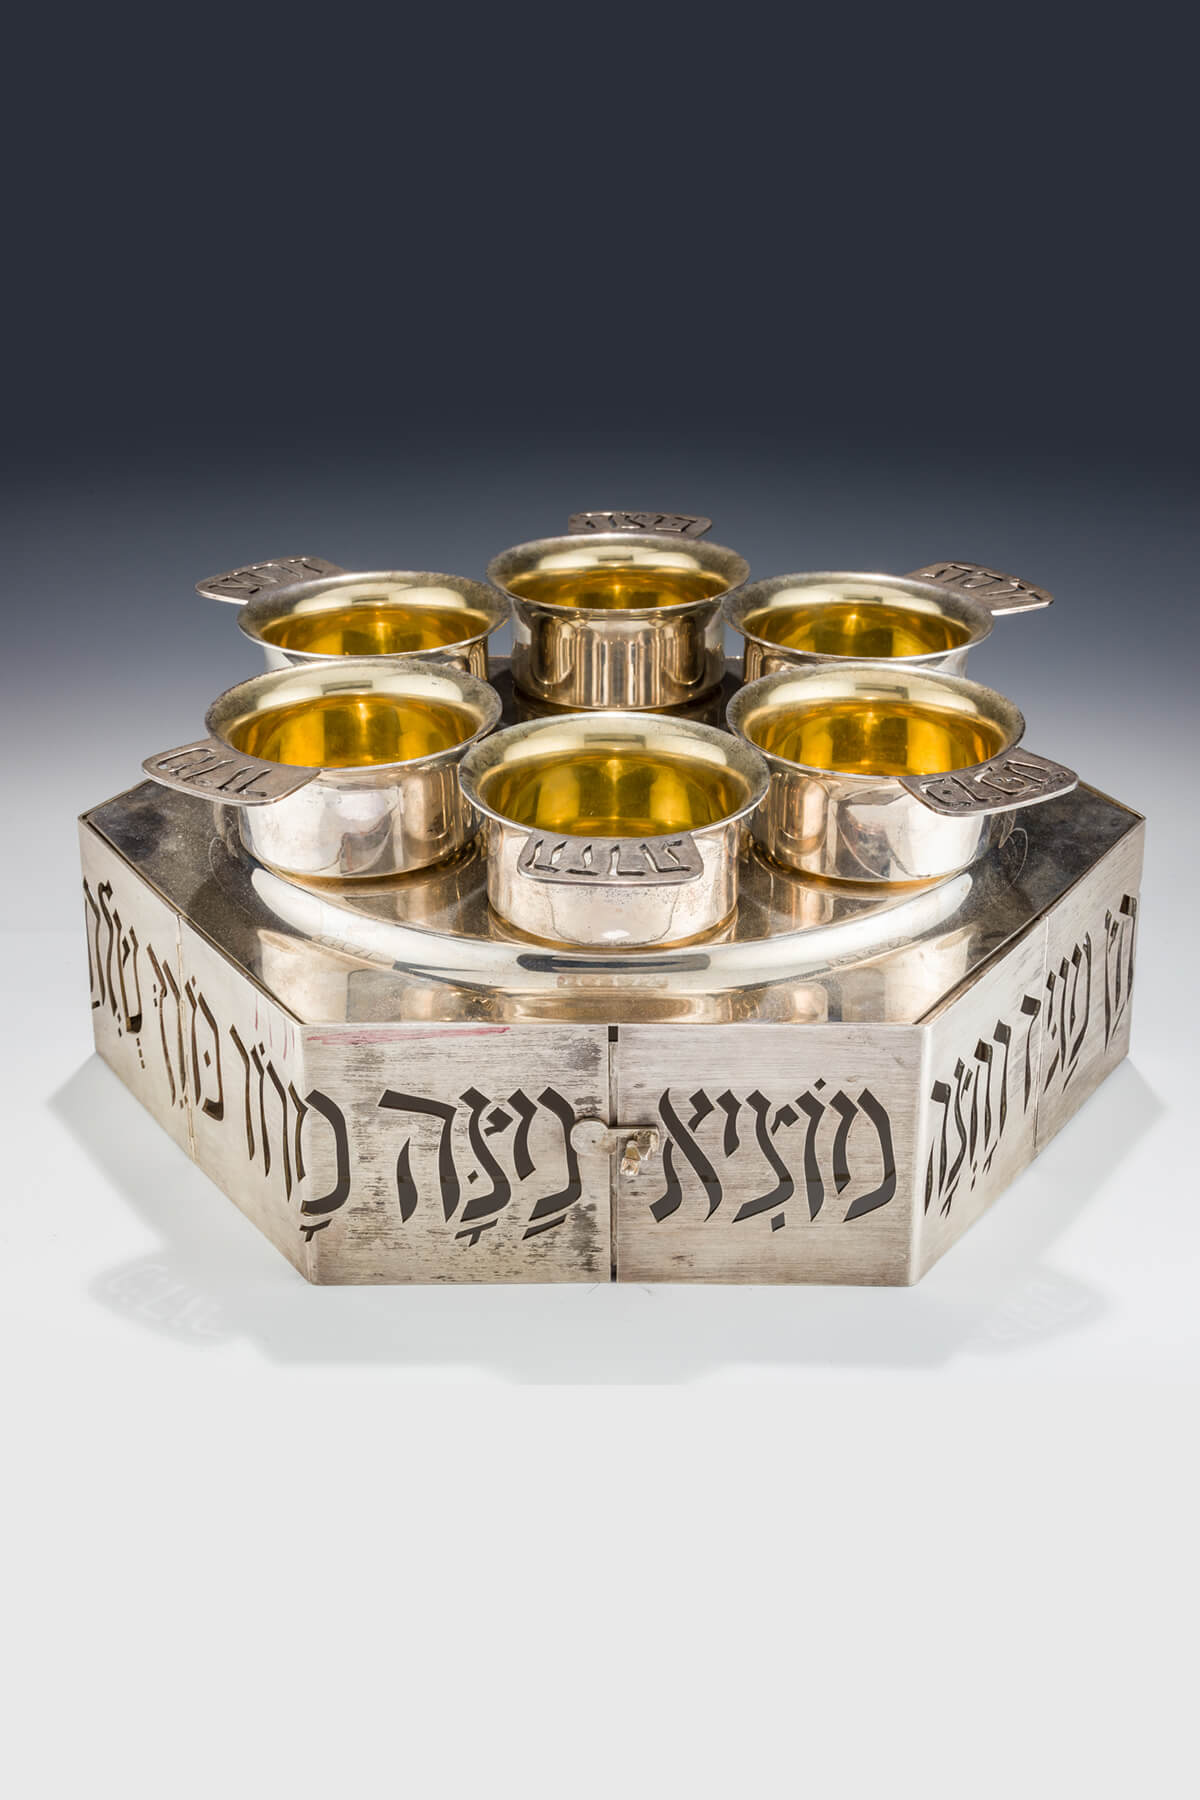 126. A Massive Sterling Silver Passover Compendium by Carmel Shabi